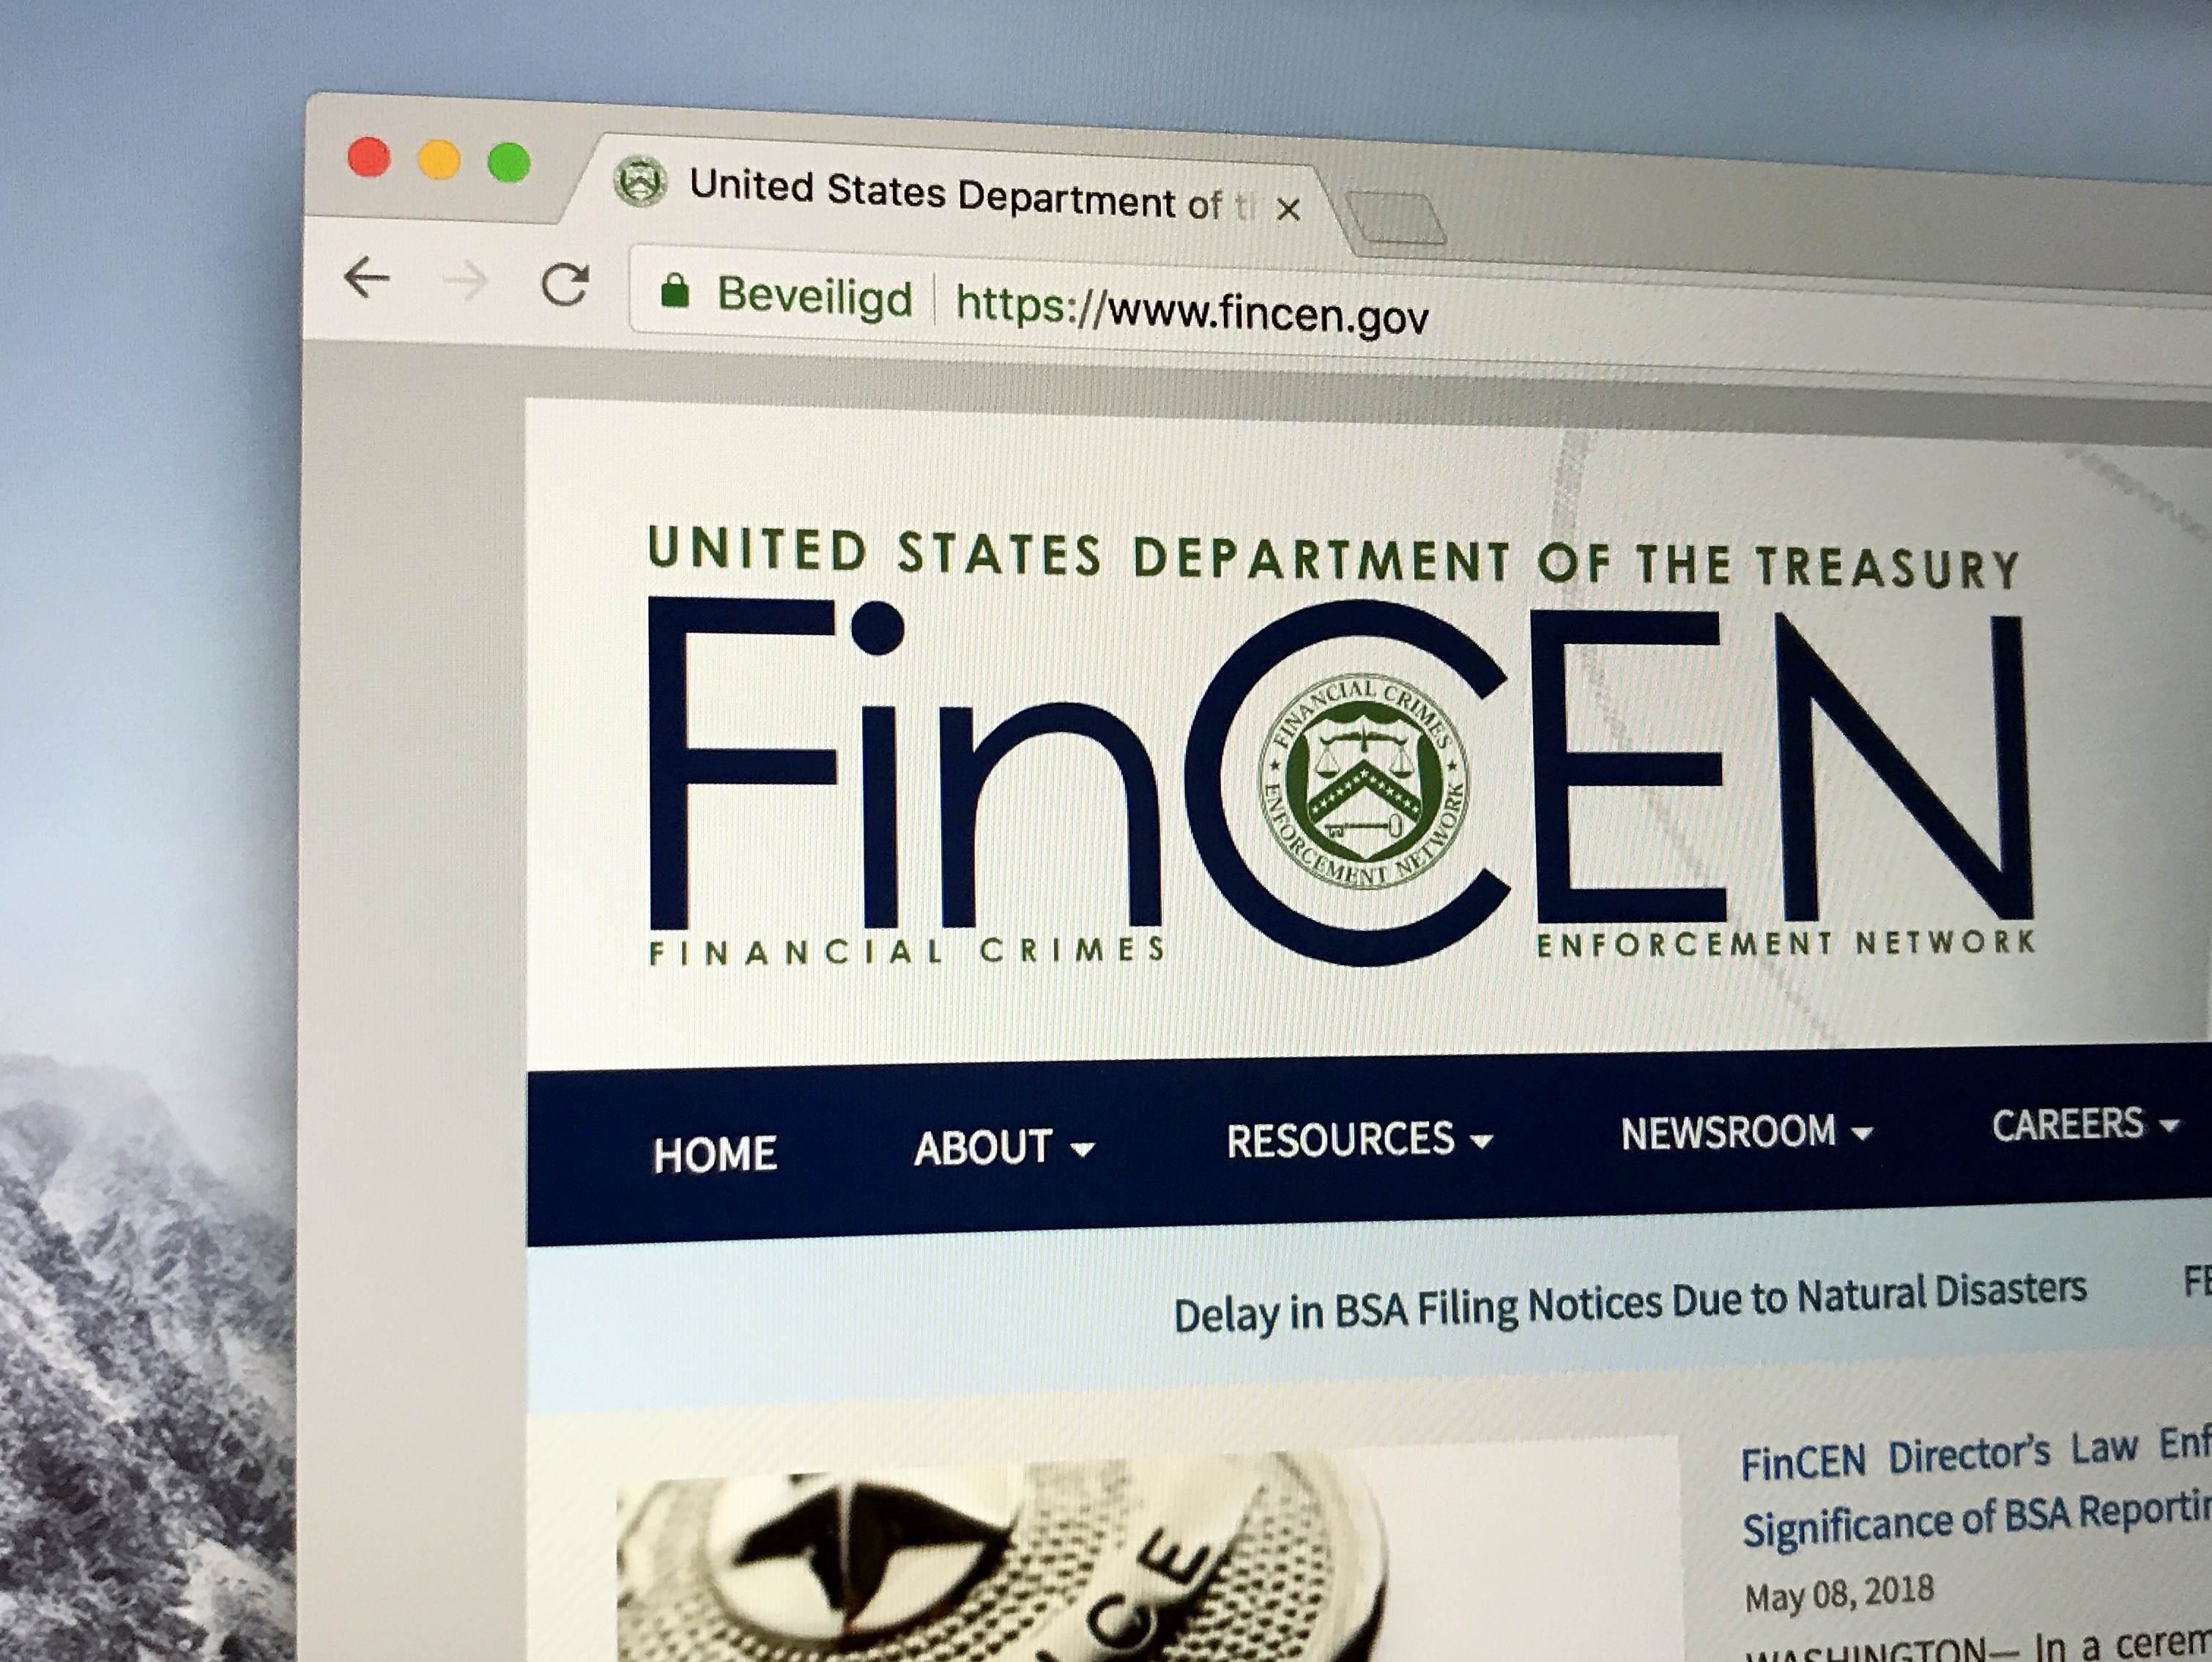 finCEN dept of treasury website URL